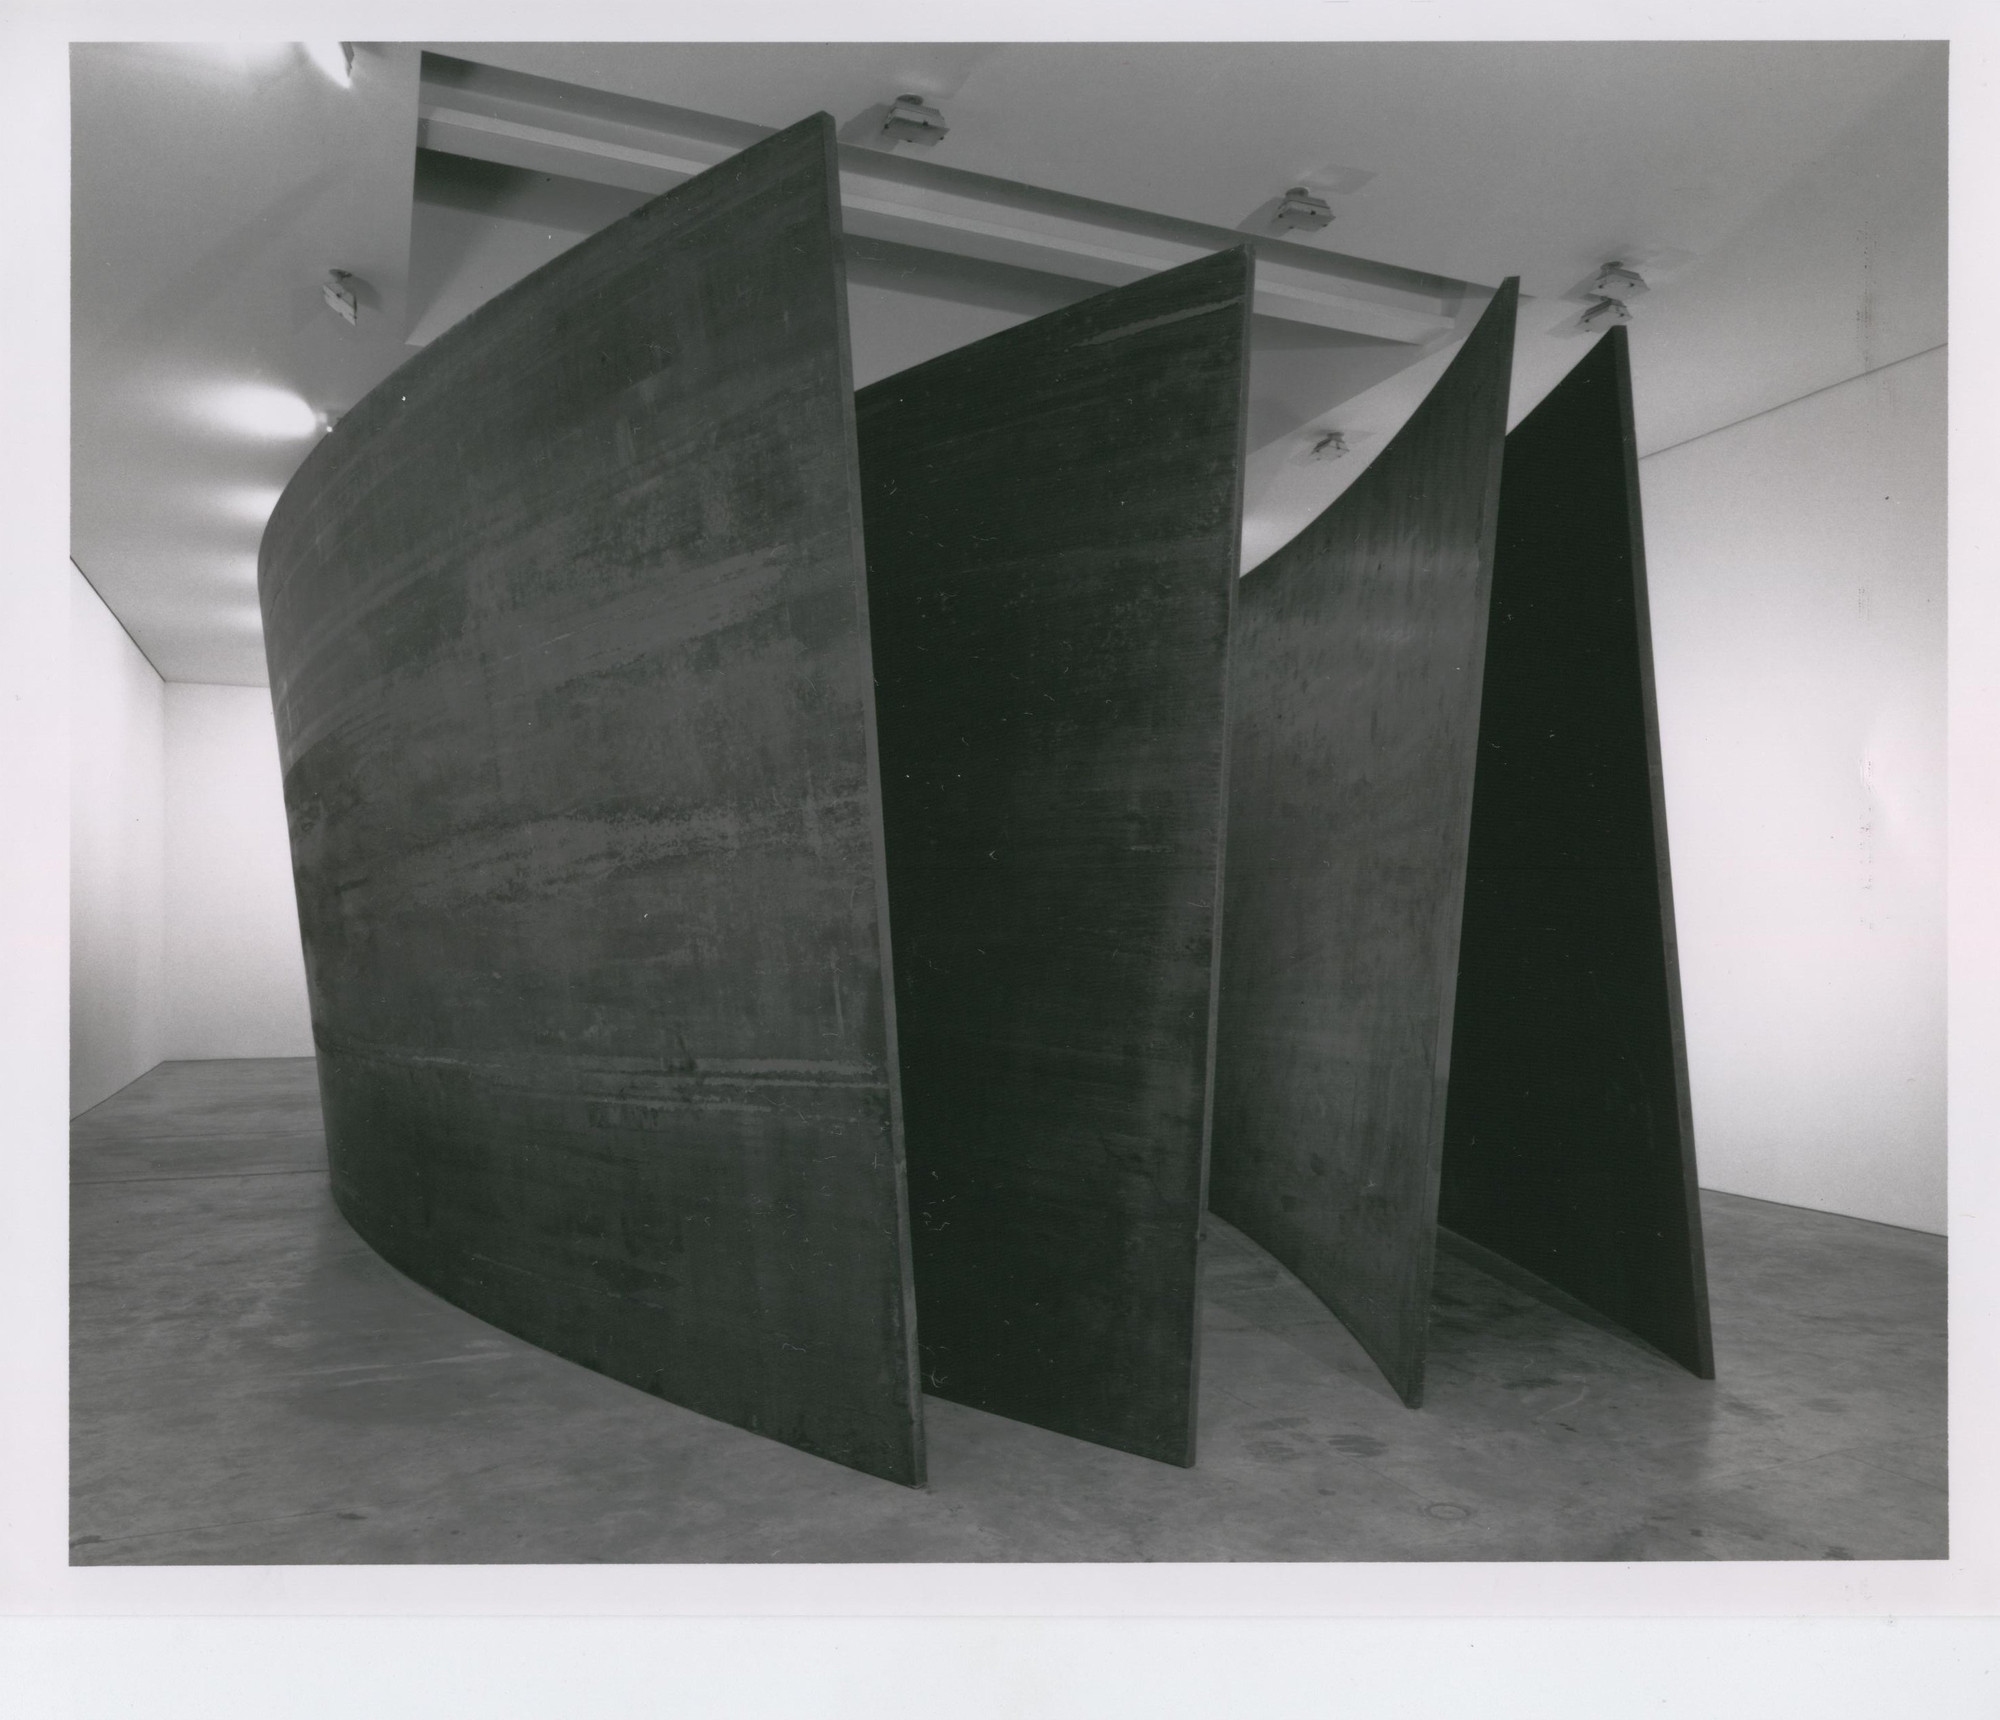 Richard Serra. Intersection II. 1992-93